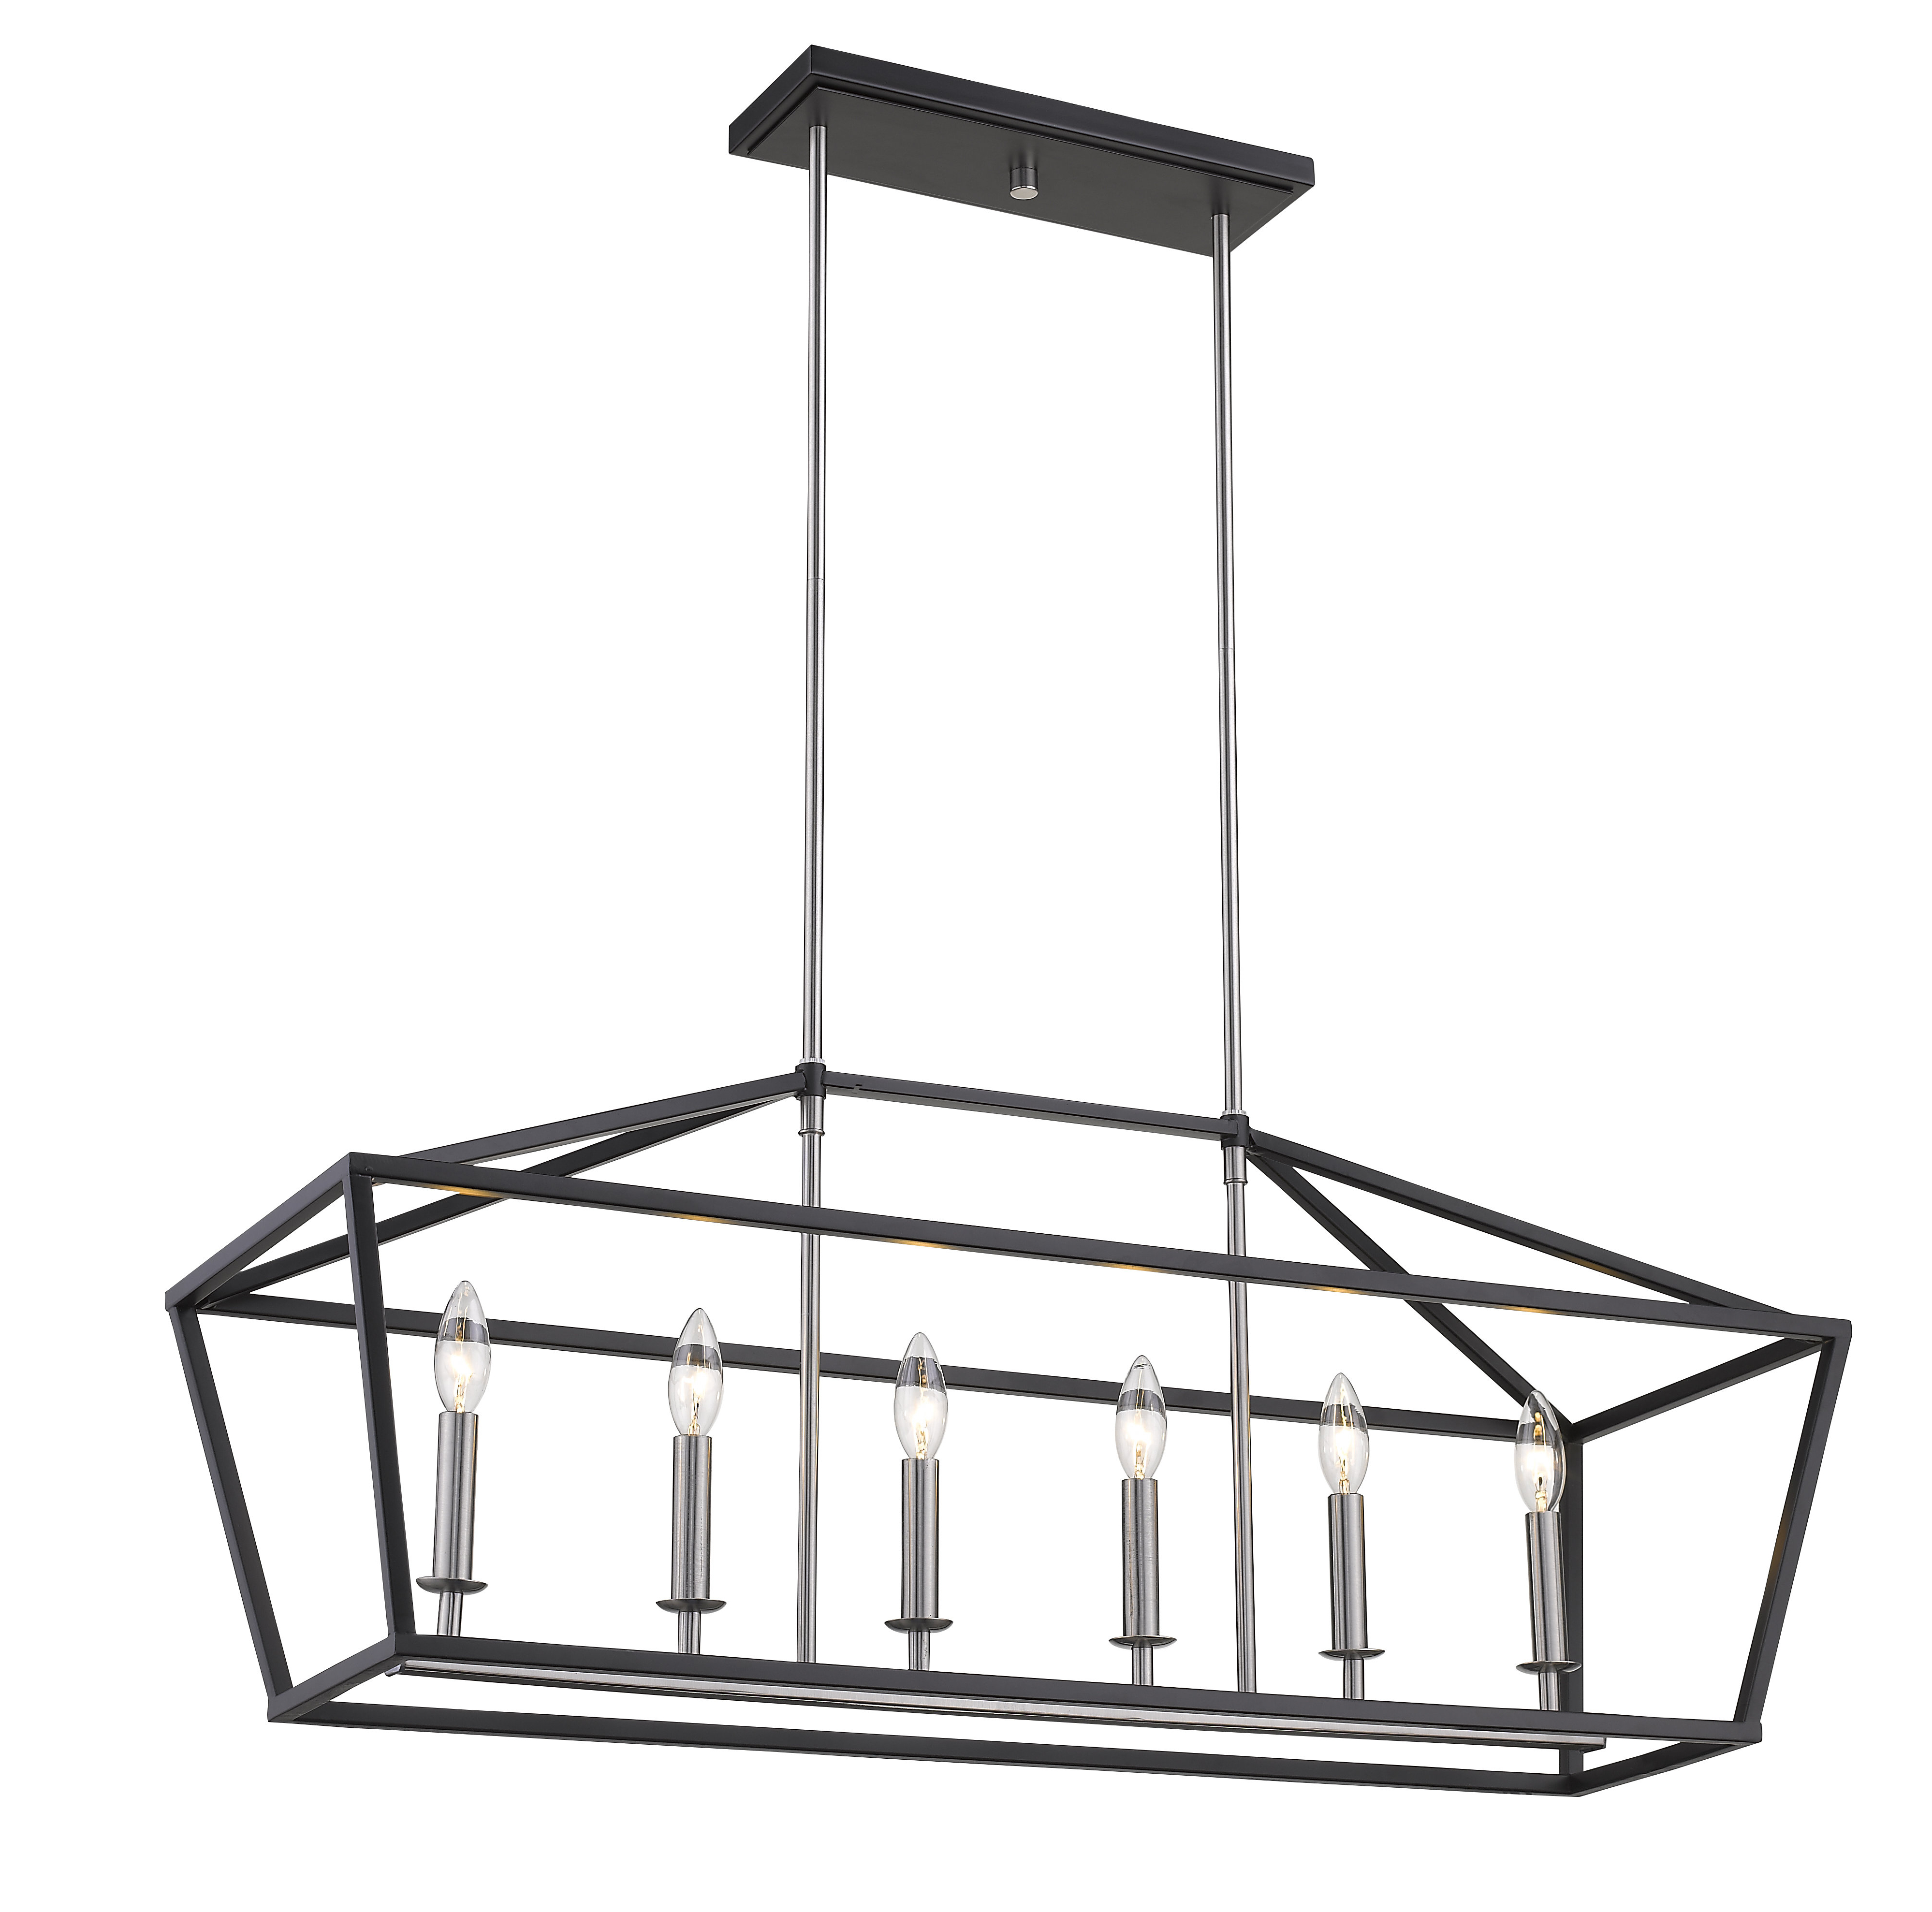 Best And Newest Carmen 6 Light Kitchen Island Linear Pendants With Regard To Sinkler 6 Light Kitchen Island Pendant (View 1 of 25)